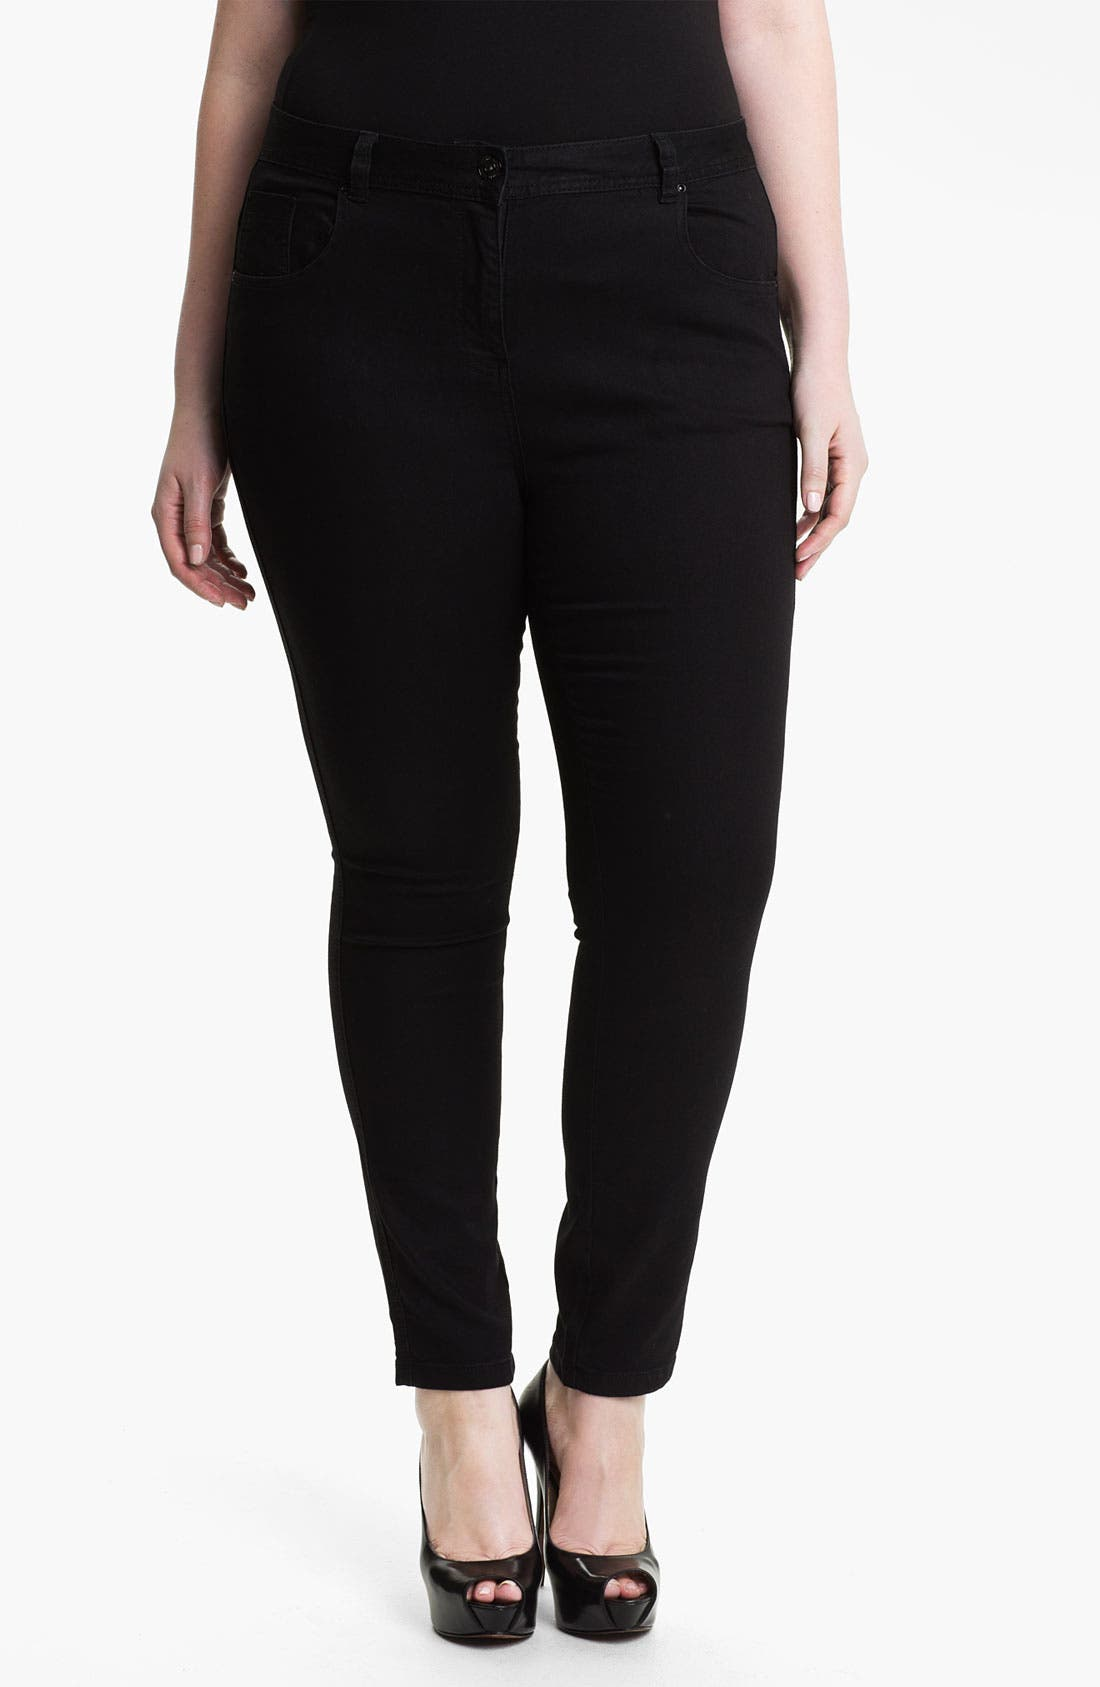 Alternate Image 1 Selected - Evans 'Super Stretch' Jeans (Plus Size)